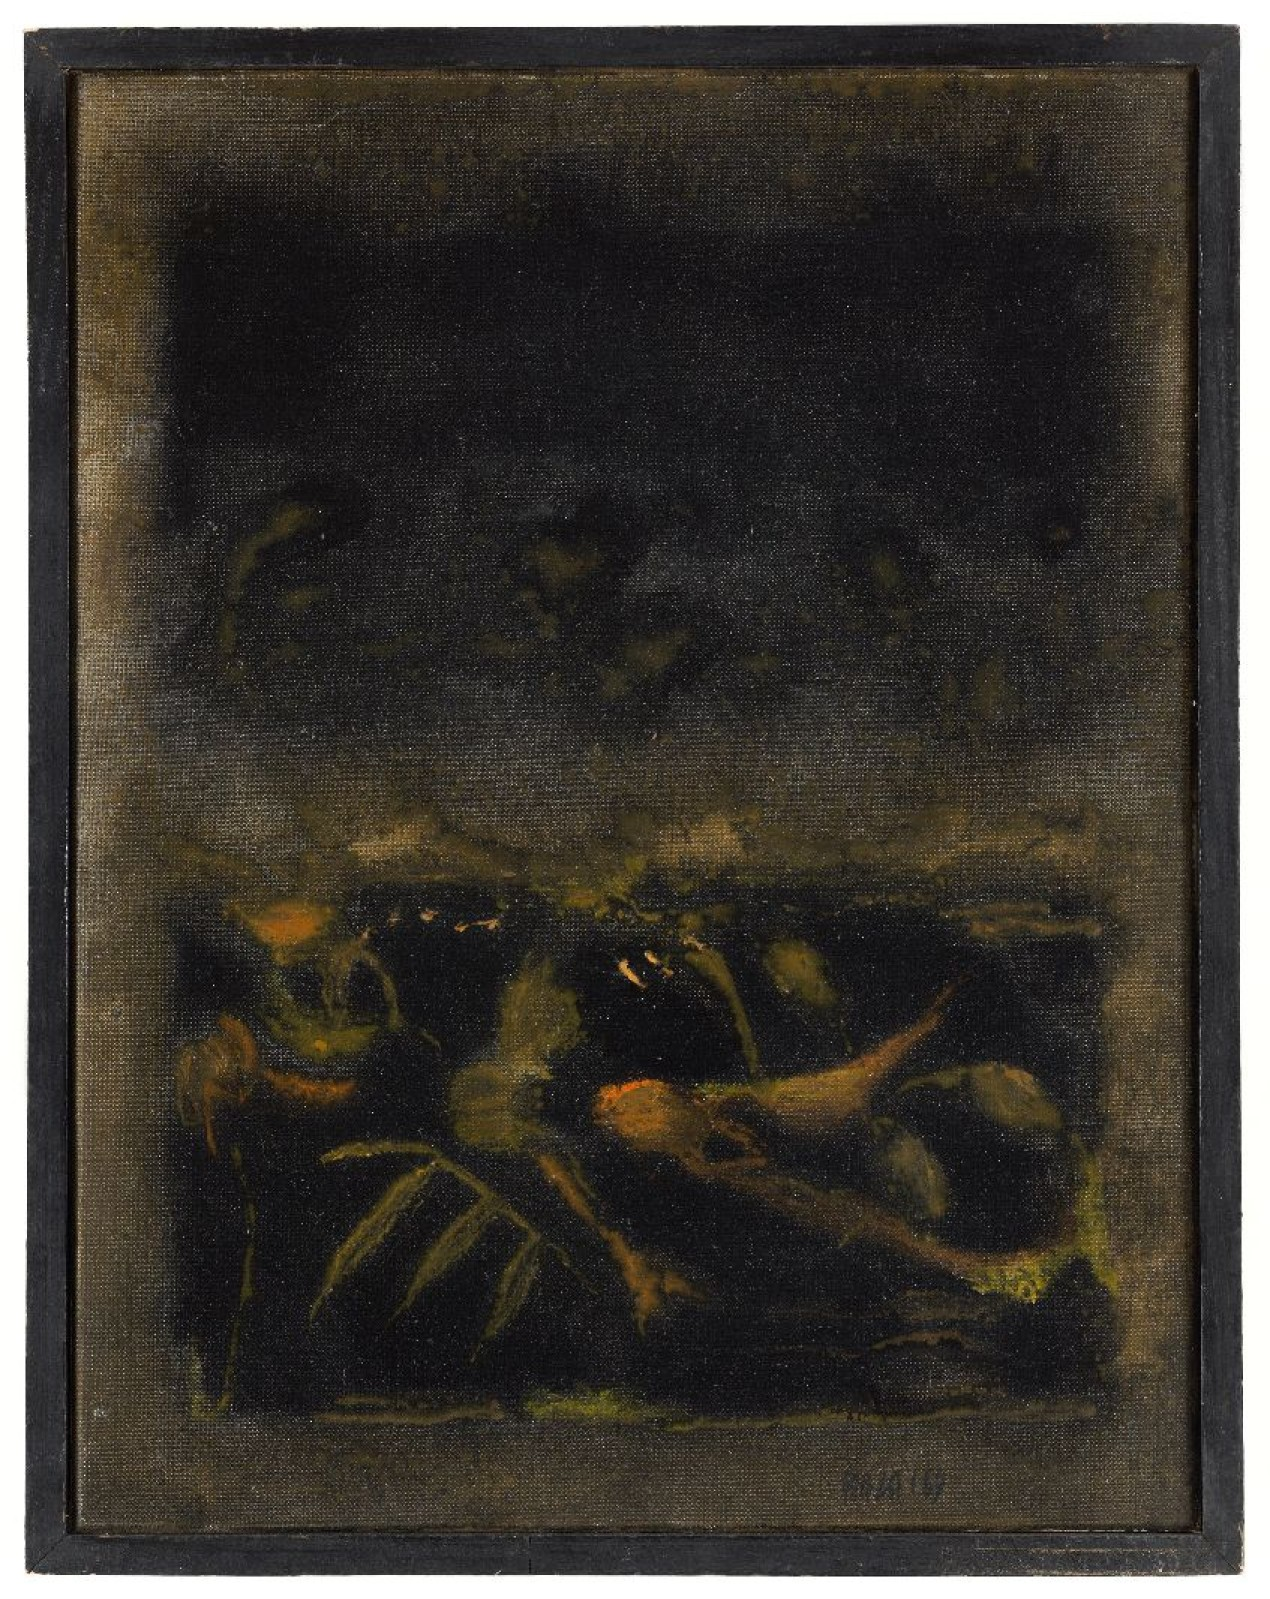 SAYED HAIDER RAZA (1922-2016) Ferveur Noire, 1969 Acrylic on canvas Signed and dated 'RAZA '69' lower right, the reverse signed, dated, titled and inscribed '5F'/ 'P.794'69' 35 x 27 cm 13 3/4 x 10 5/8 in PROVENANCE Private French collection; Grosvenor Gallery, London PUBLICATIONS Macklin, Anne, SH Raza, Catalogue Raisonne, vol 1 (1958-1971), New Delhi, 2016, p.177